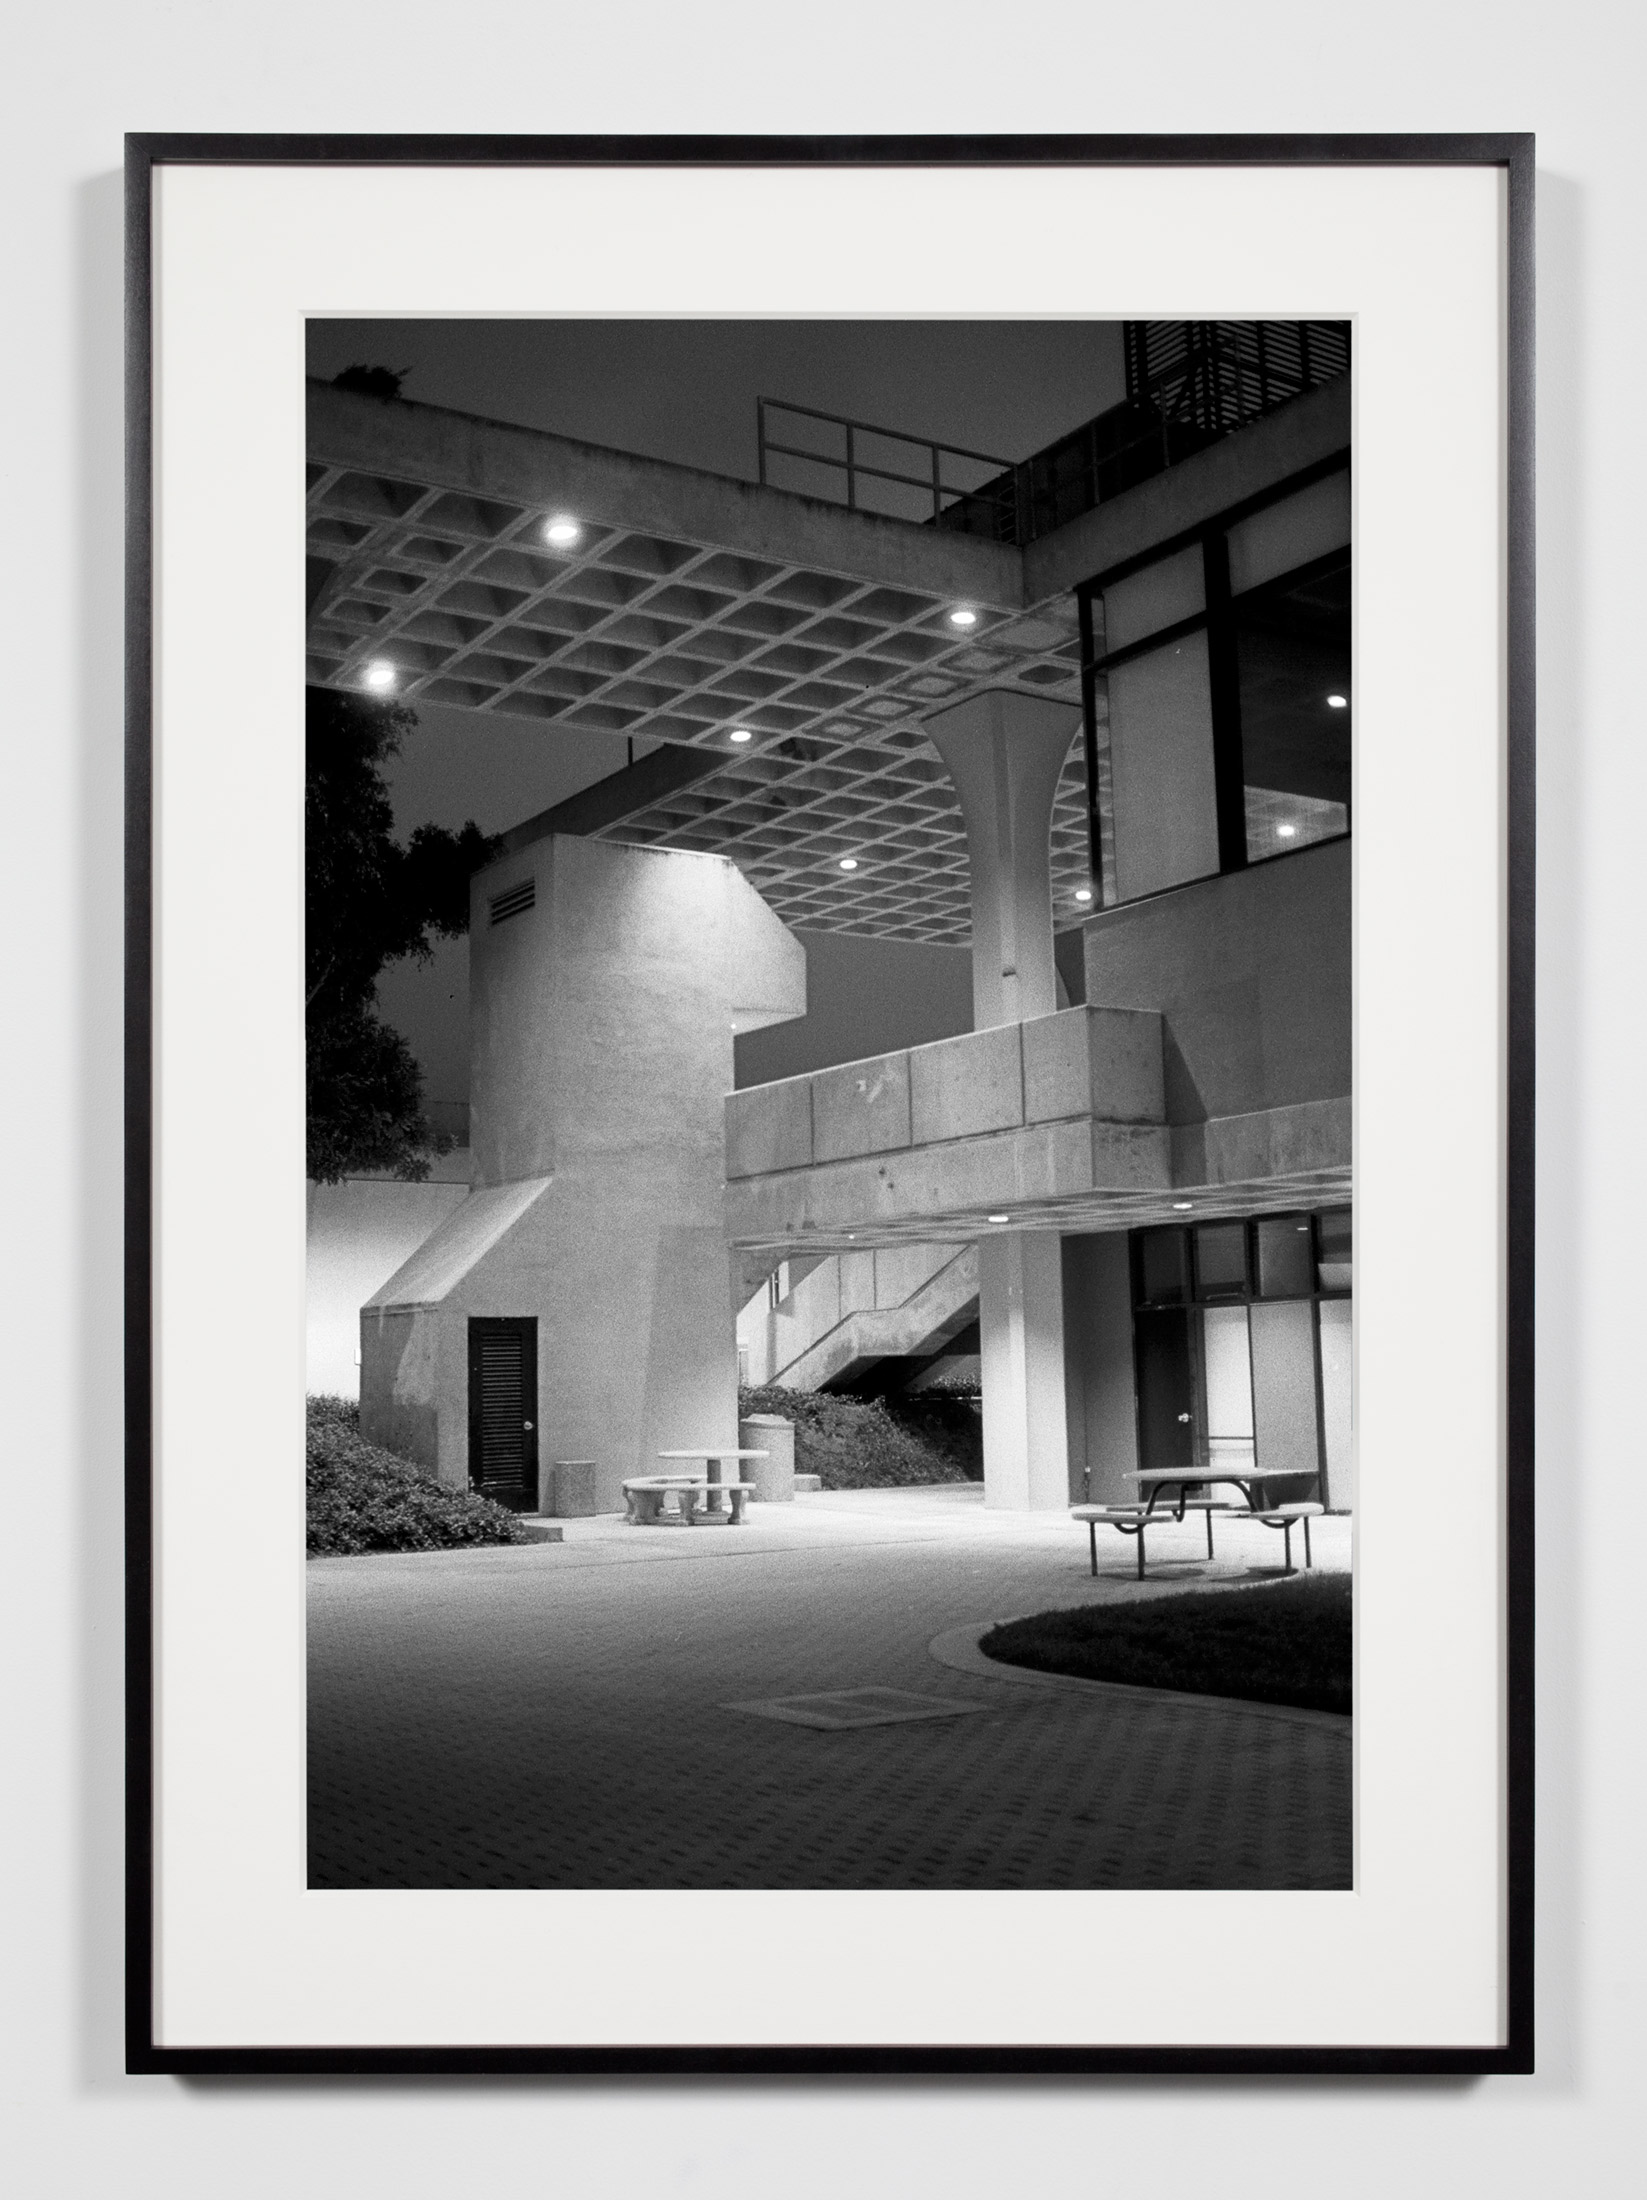 Claire Trevor School of the Arts (University of California Irvine), Irvine, California, July 17, 2008    2009   Epson Ultrachrome K3 archival ink jet print on Hahnemühle Photo Rag paper  36 3/8 x 26 3/8 inches   Industrial Portraits, 2008–